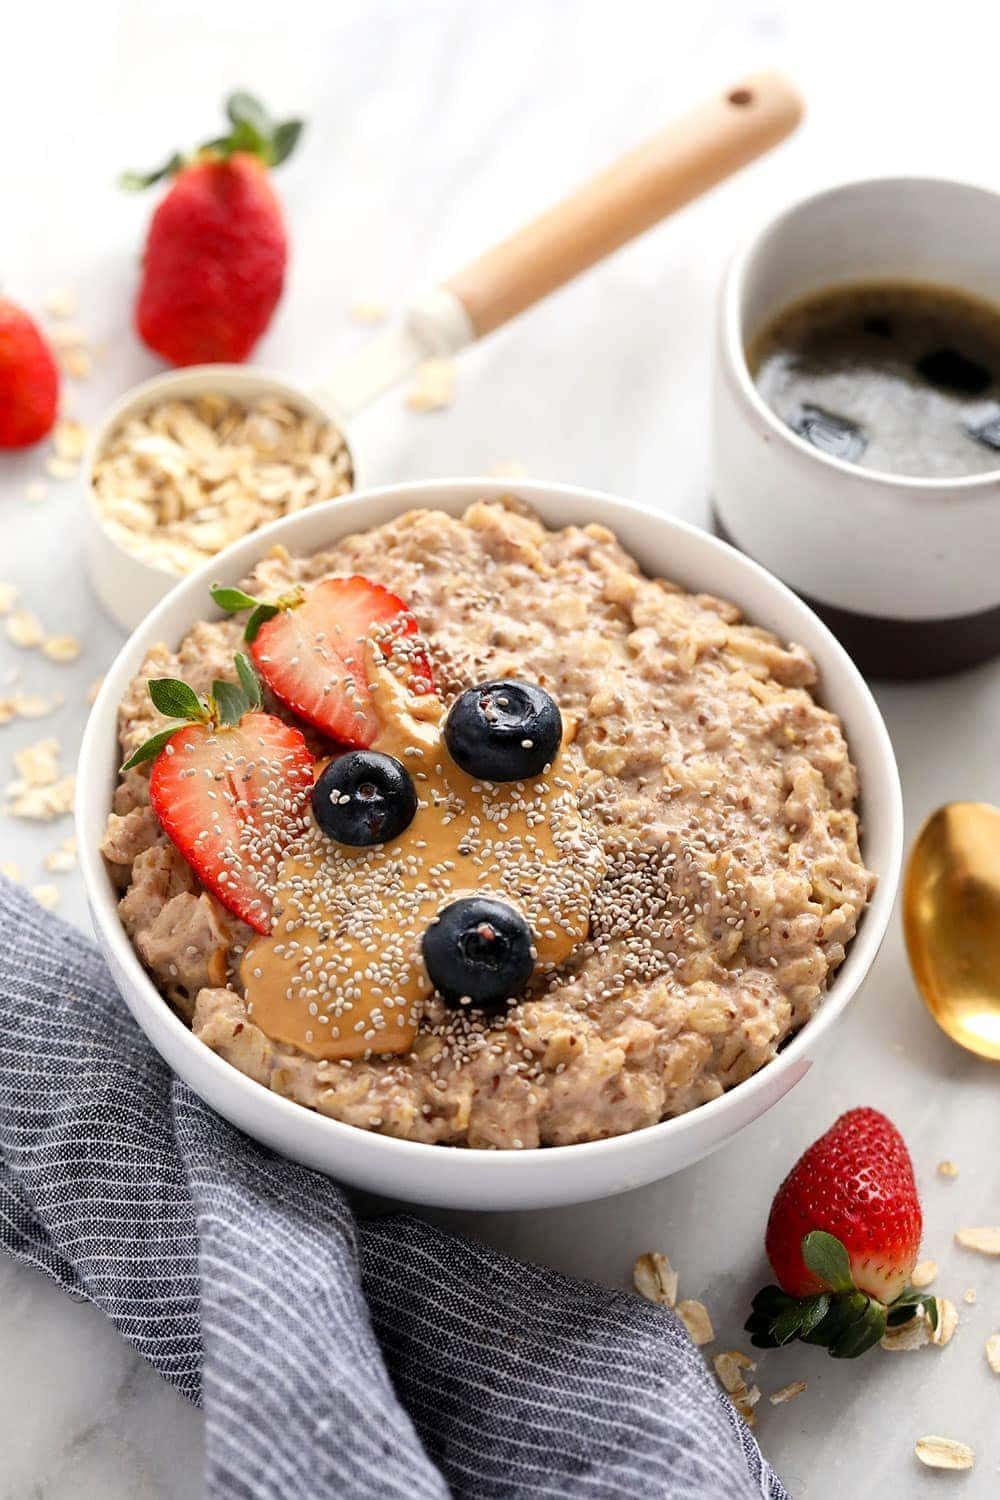 superfood oatmeal bowl topped with berries and nut butter